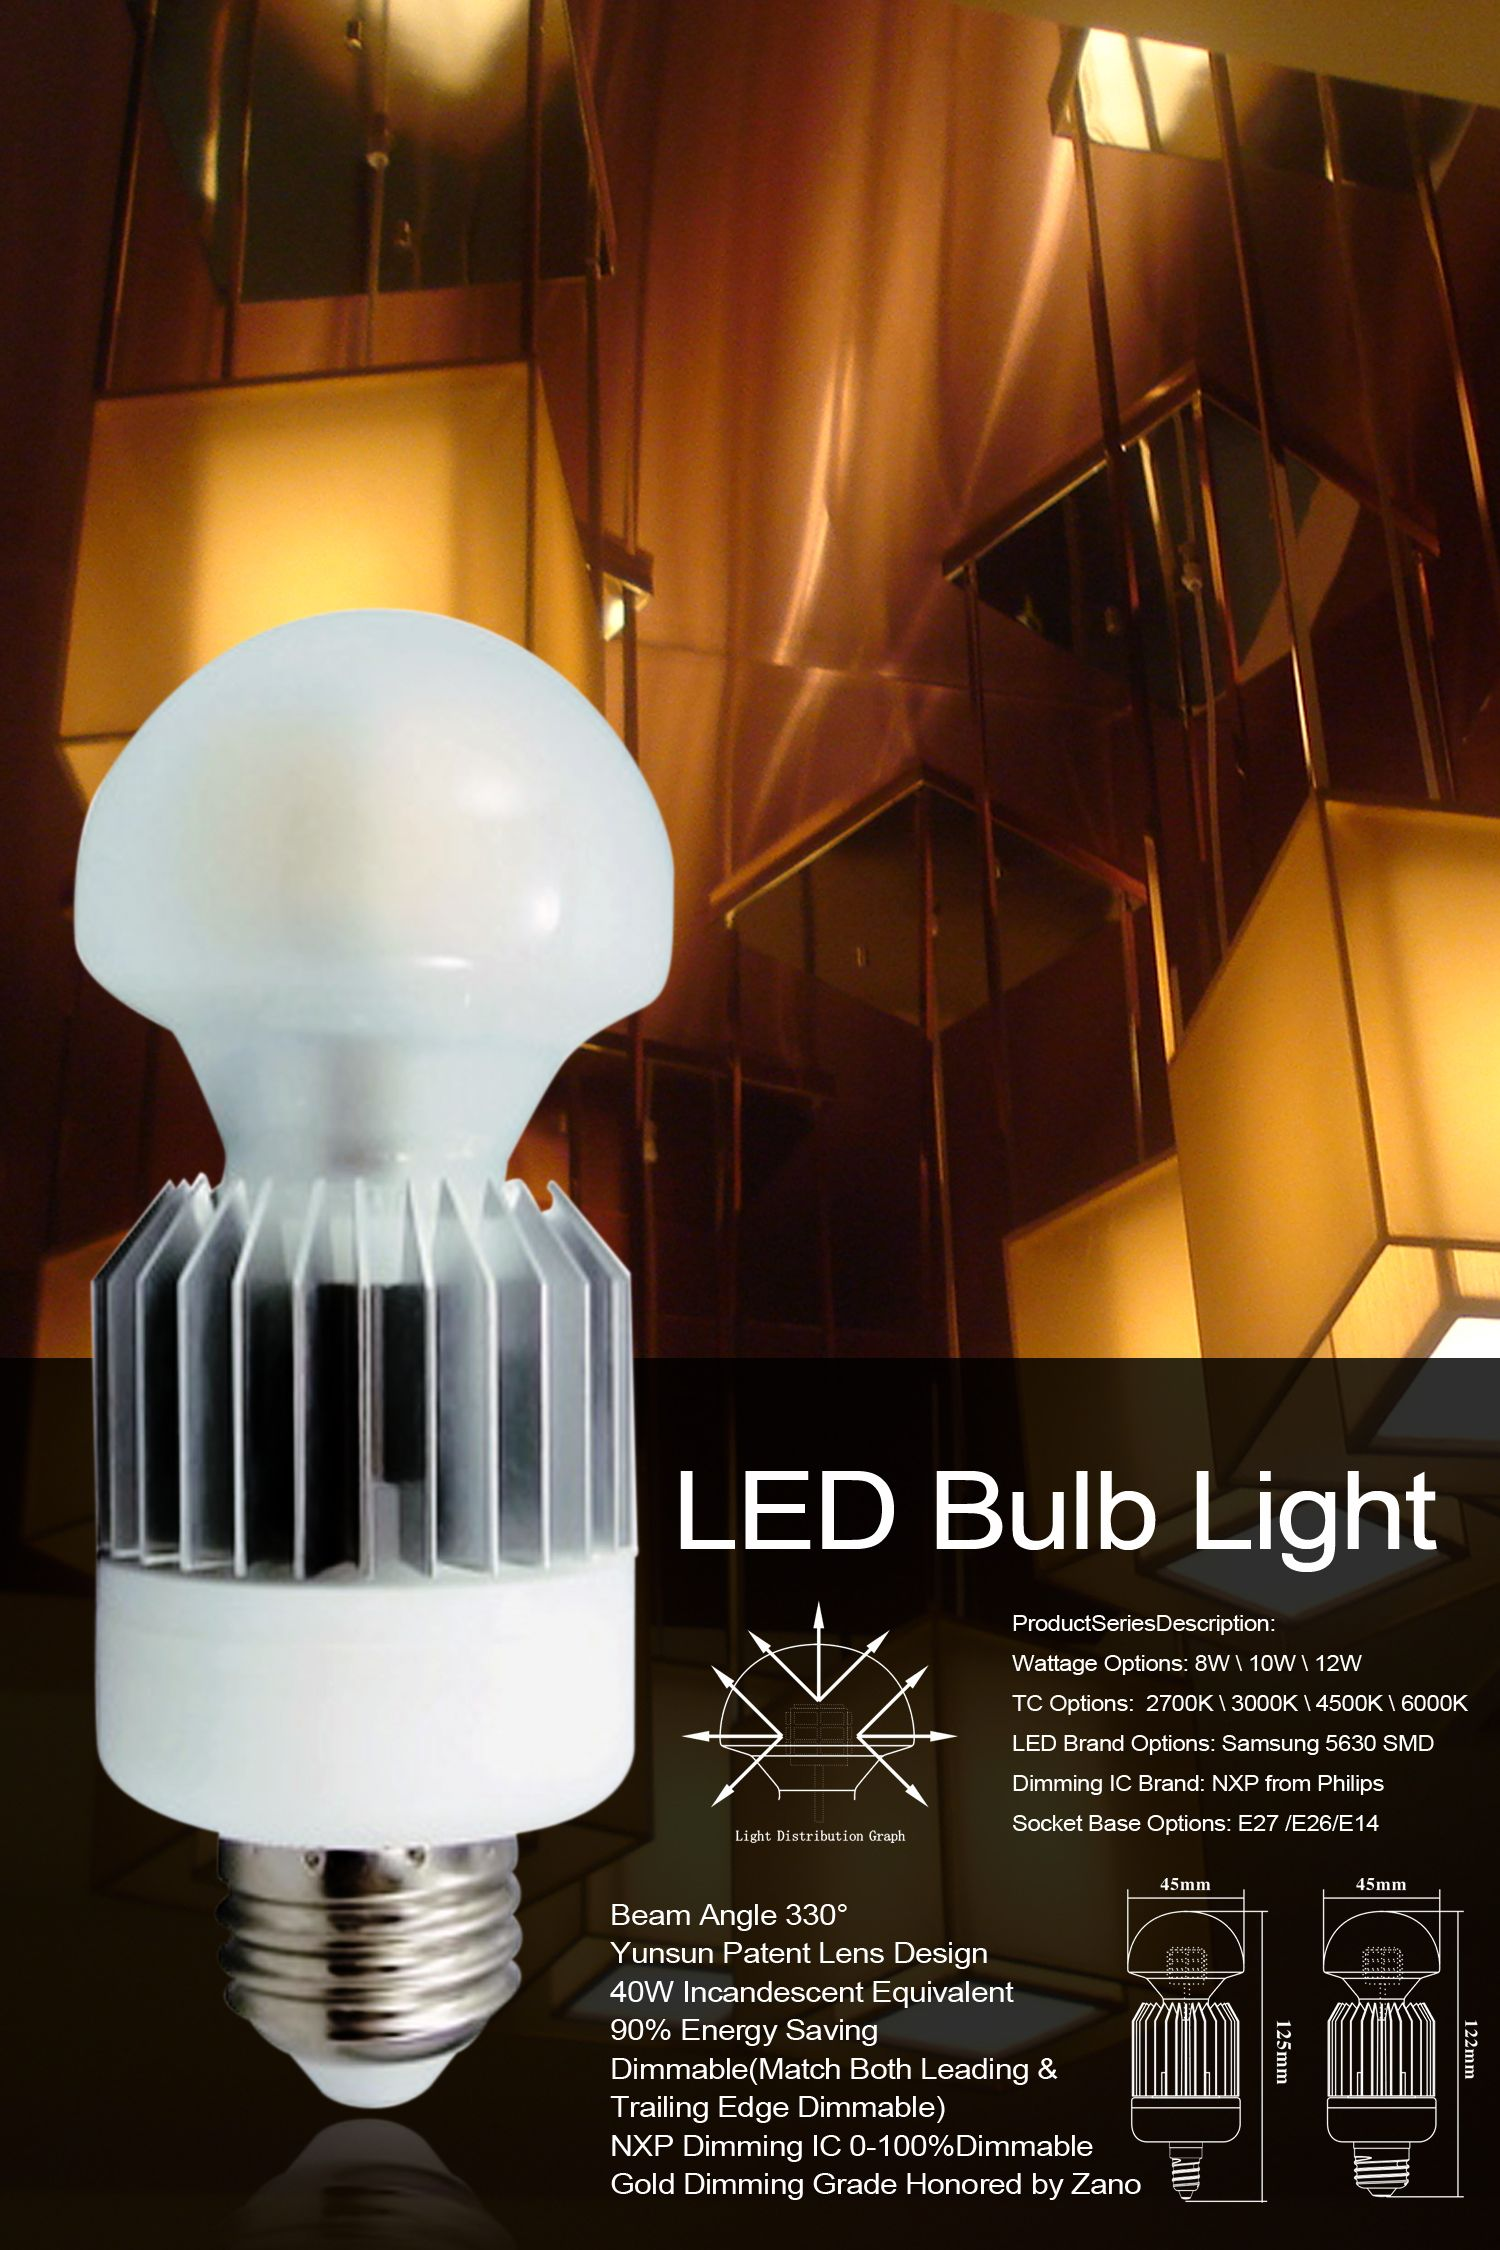 Cri Can Be Up To 95 Nearly The Same As Conventional Incandescent Bulb 0 100 Smoothly Dimmable And Match Both Leading And Trailing Ed Led Bulb Fan Light Bulb